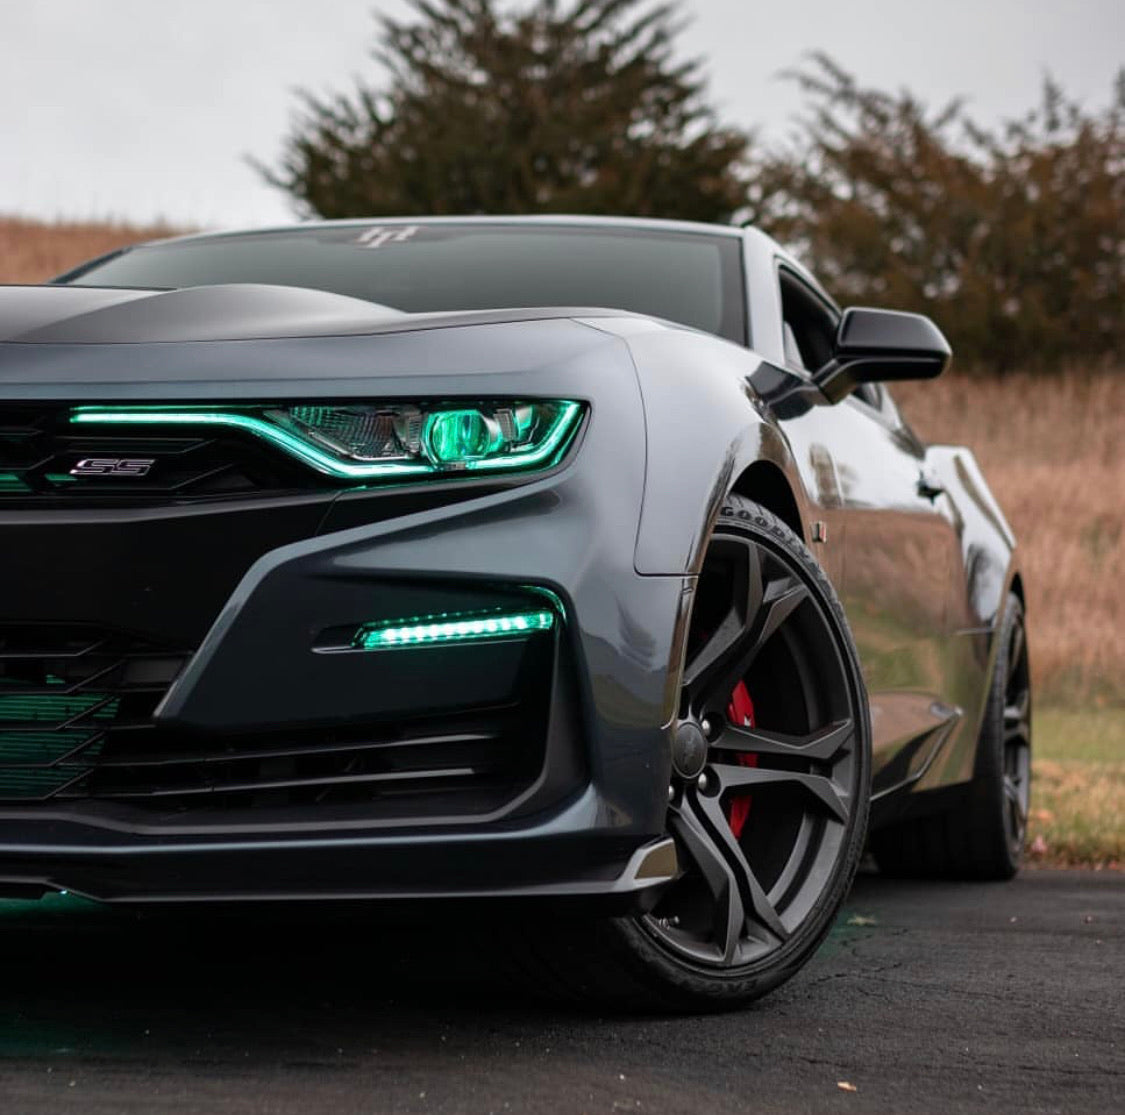 20192020 chevrolet camaro rs ss rgbw a led drl boards